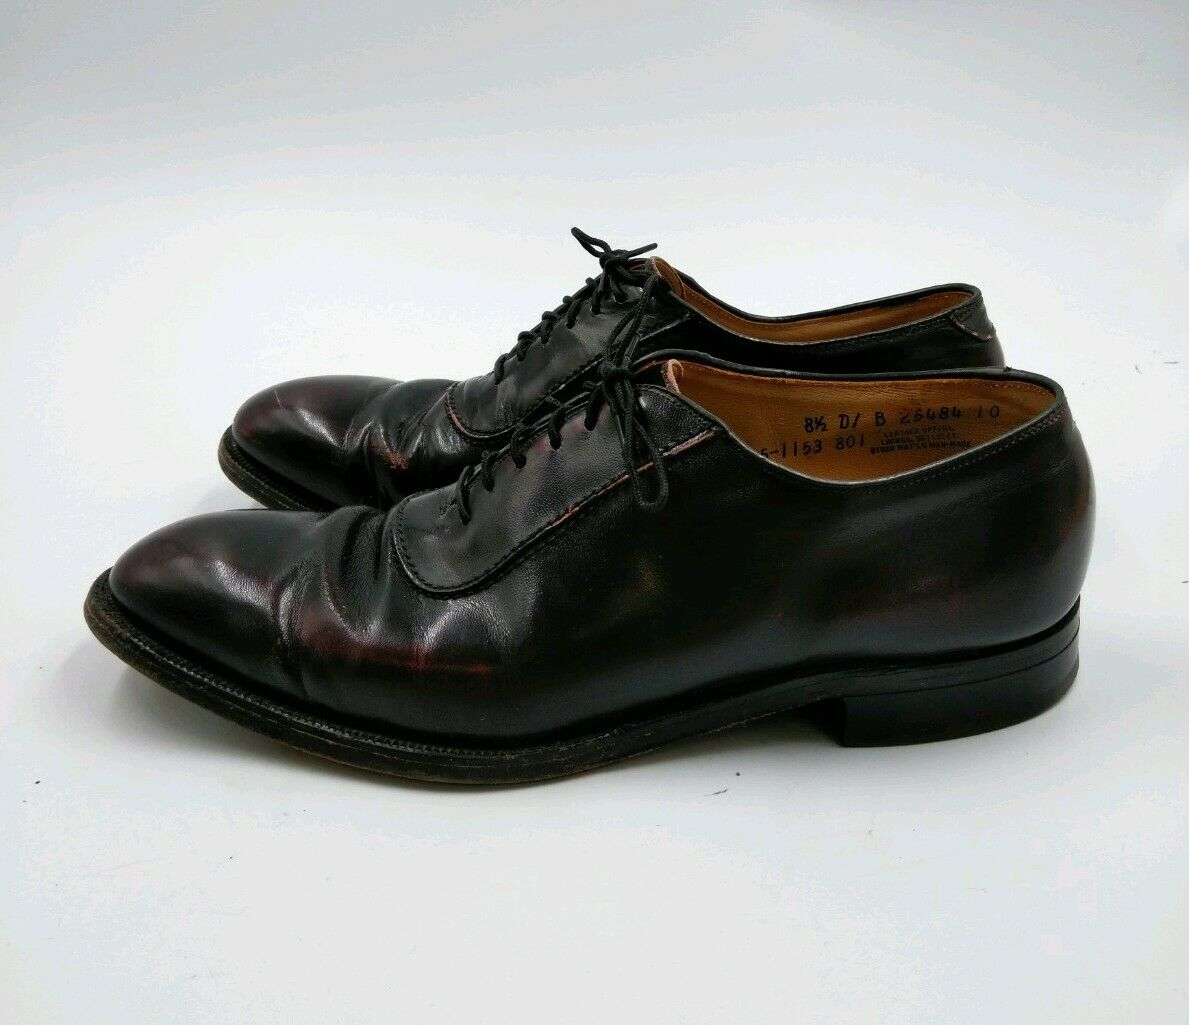 JOHNSTON & MURPHY Mens Leather Dress Shoes Size 8.5D Dark Burgundy Made in USA